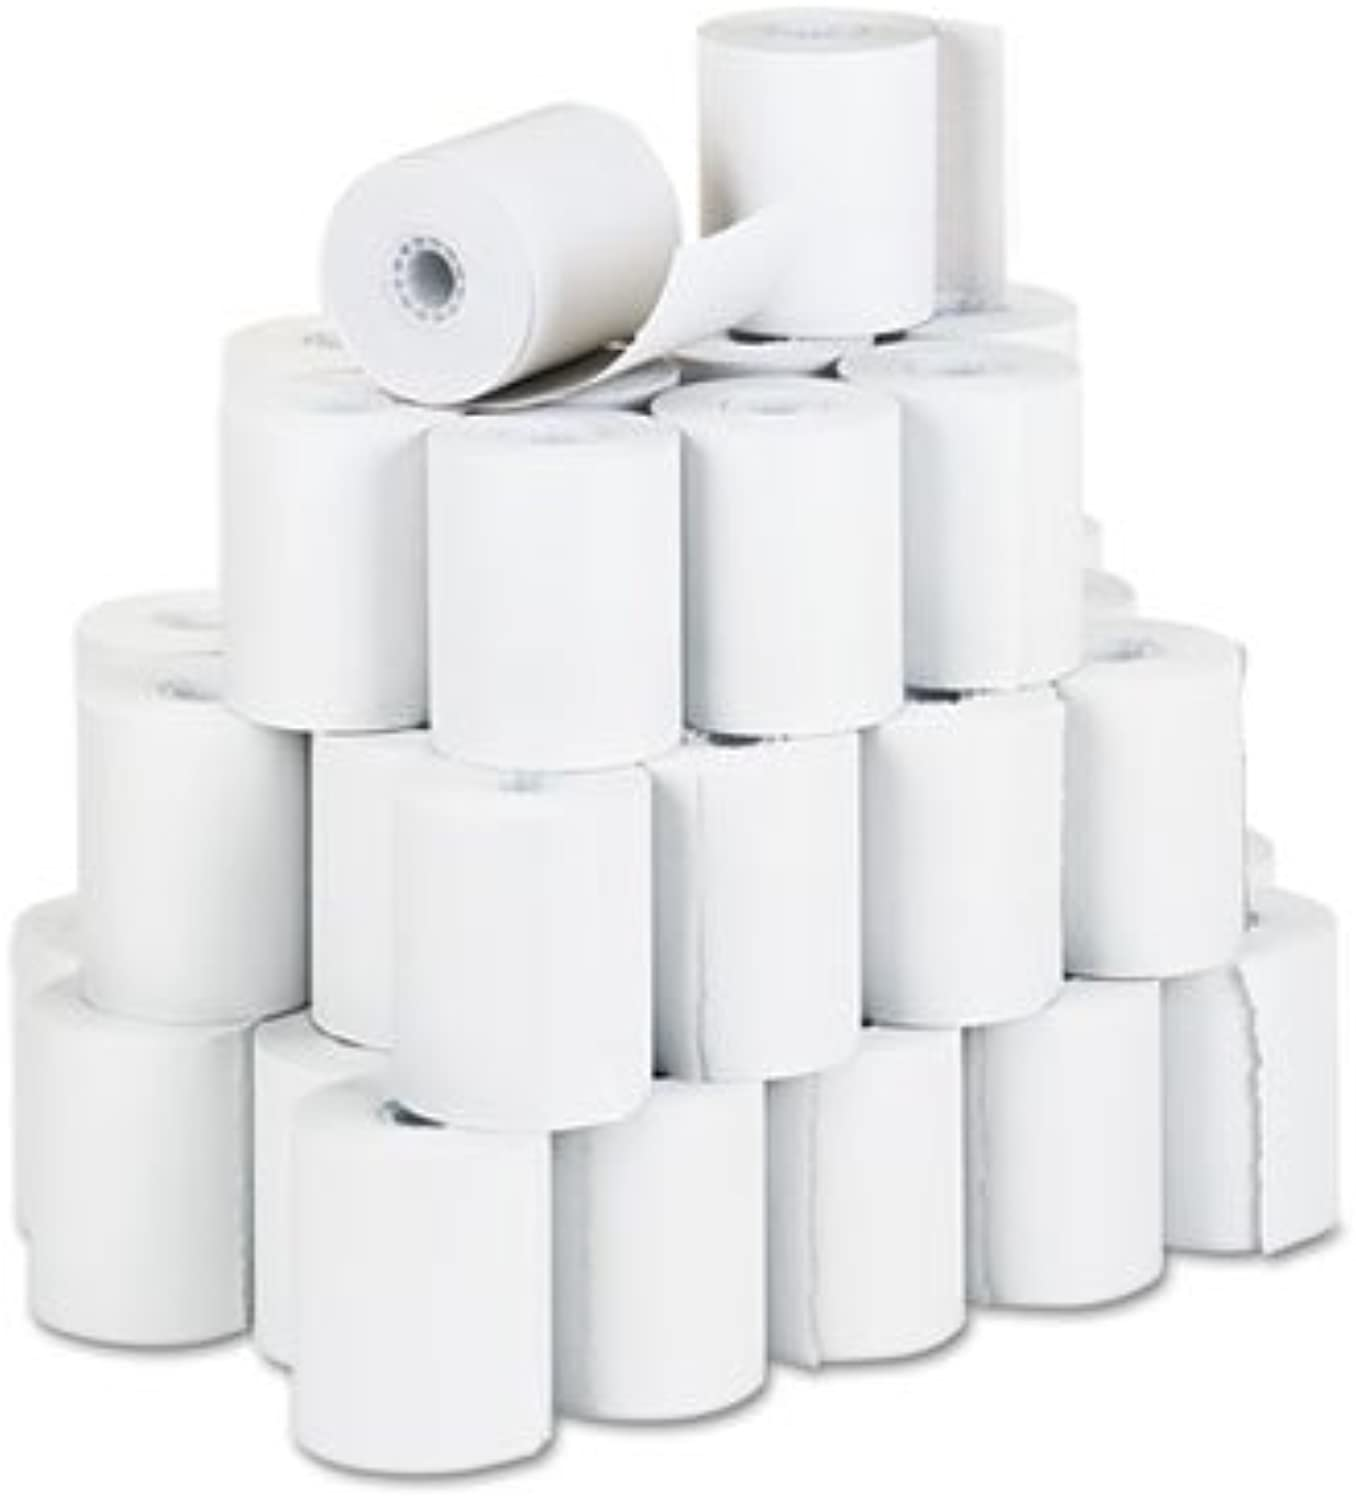 Recycled Receipt Rolls, 3-1 4'' x 150 ft, White, 50 Carton, Sold as 1 Carton